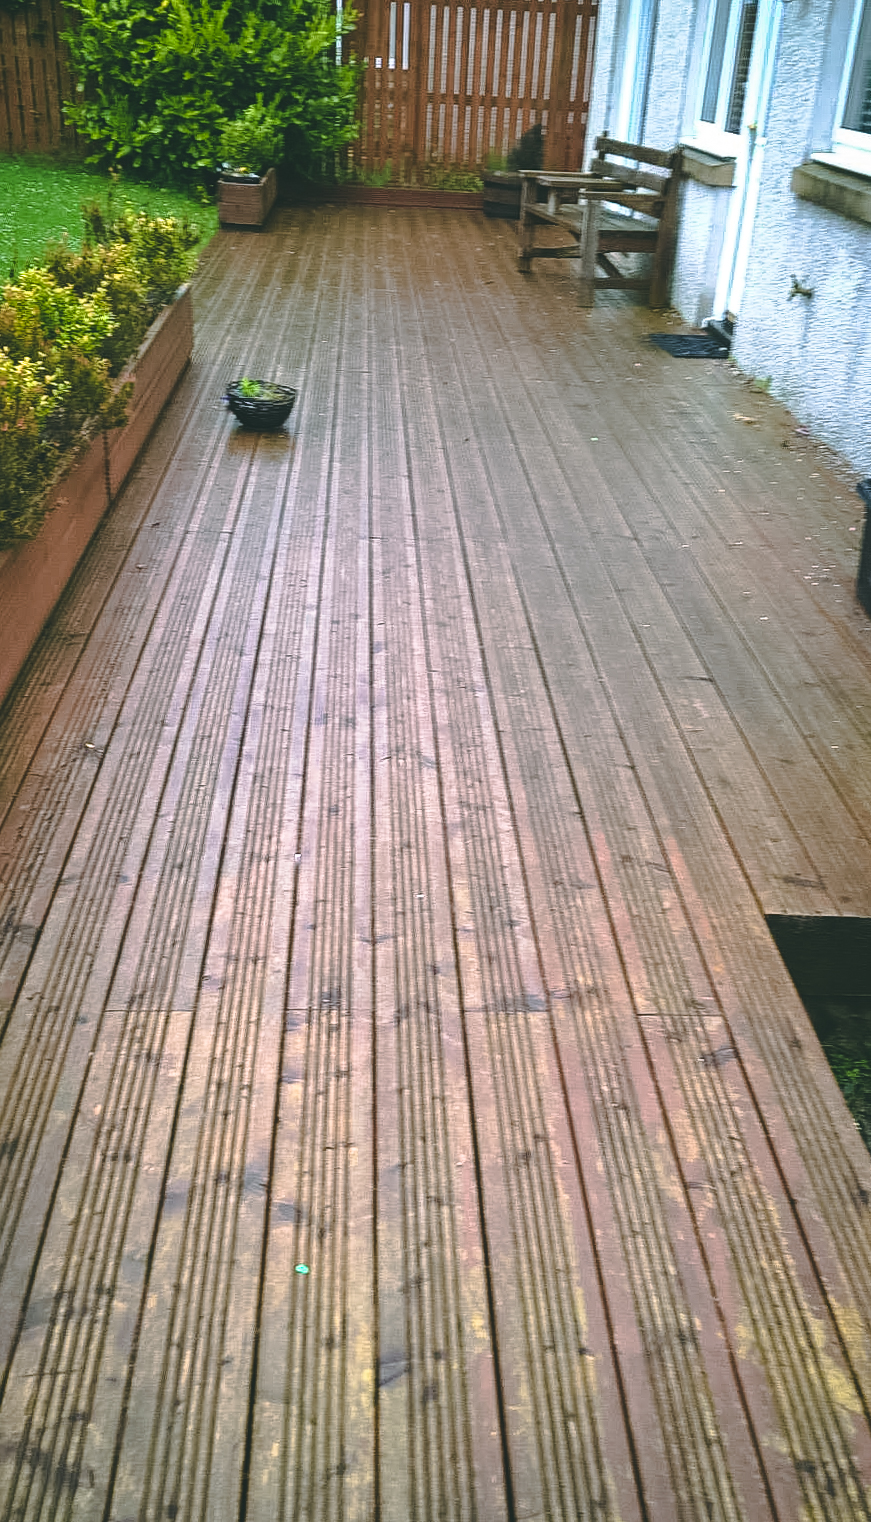 Existing decking pre-staining